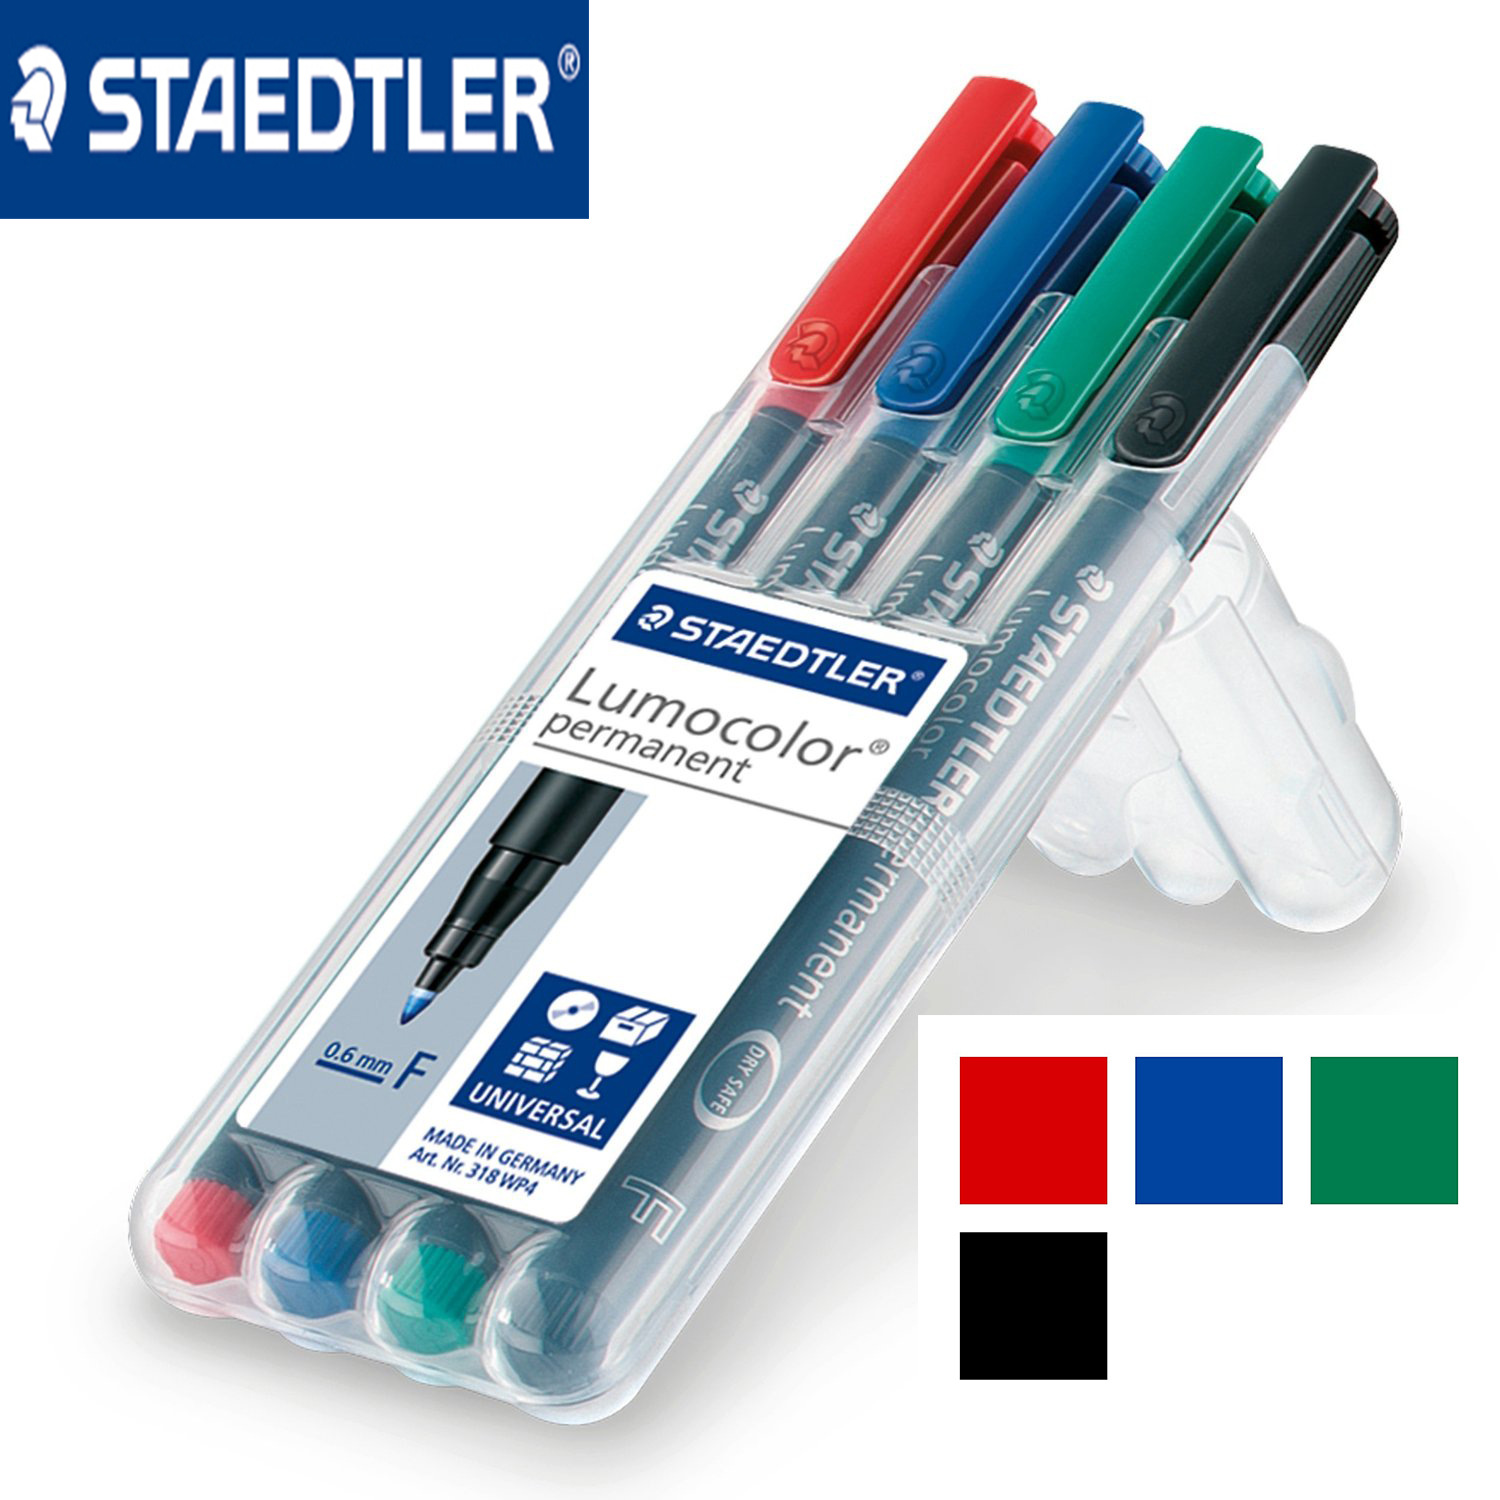 Staedtler 318-WP4 Lumocolor Permanent Marker Pen Fine Point 0.6mm Universal Pens Paint Writing for CD Paper Wood Multipurpose